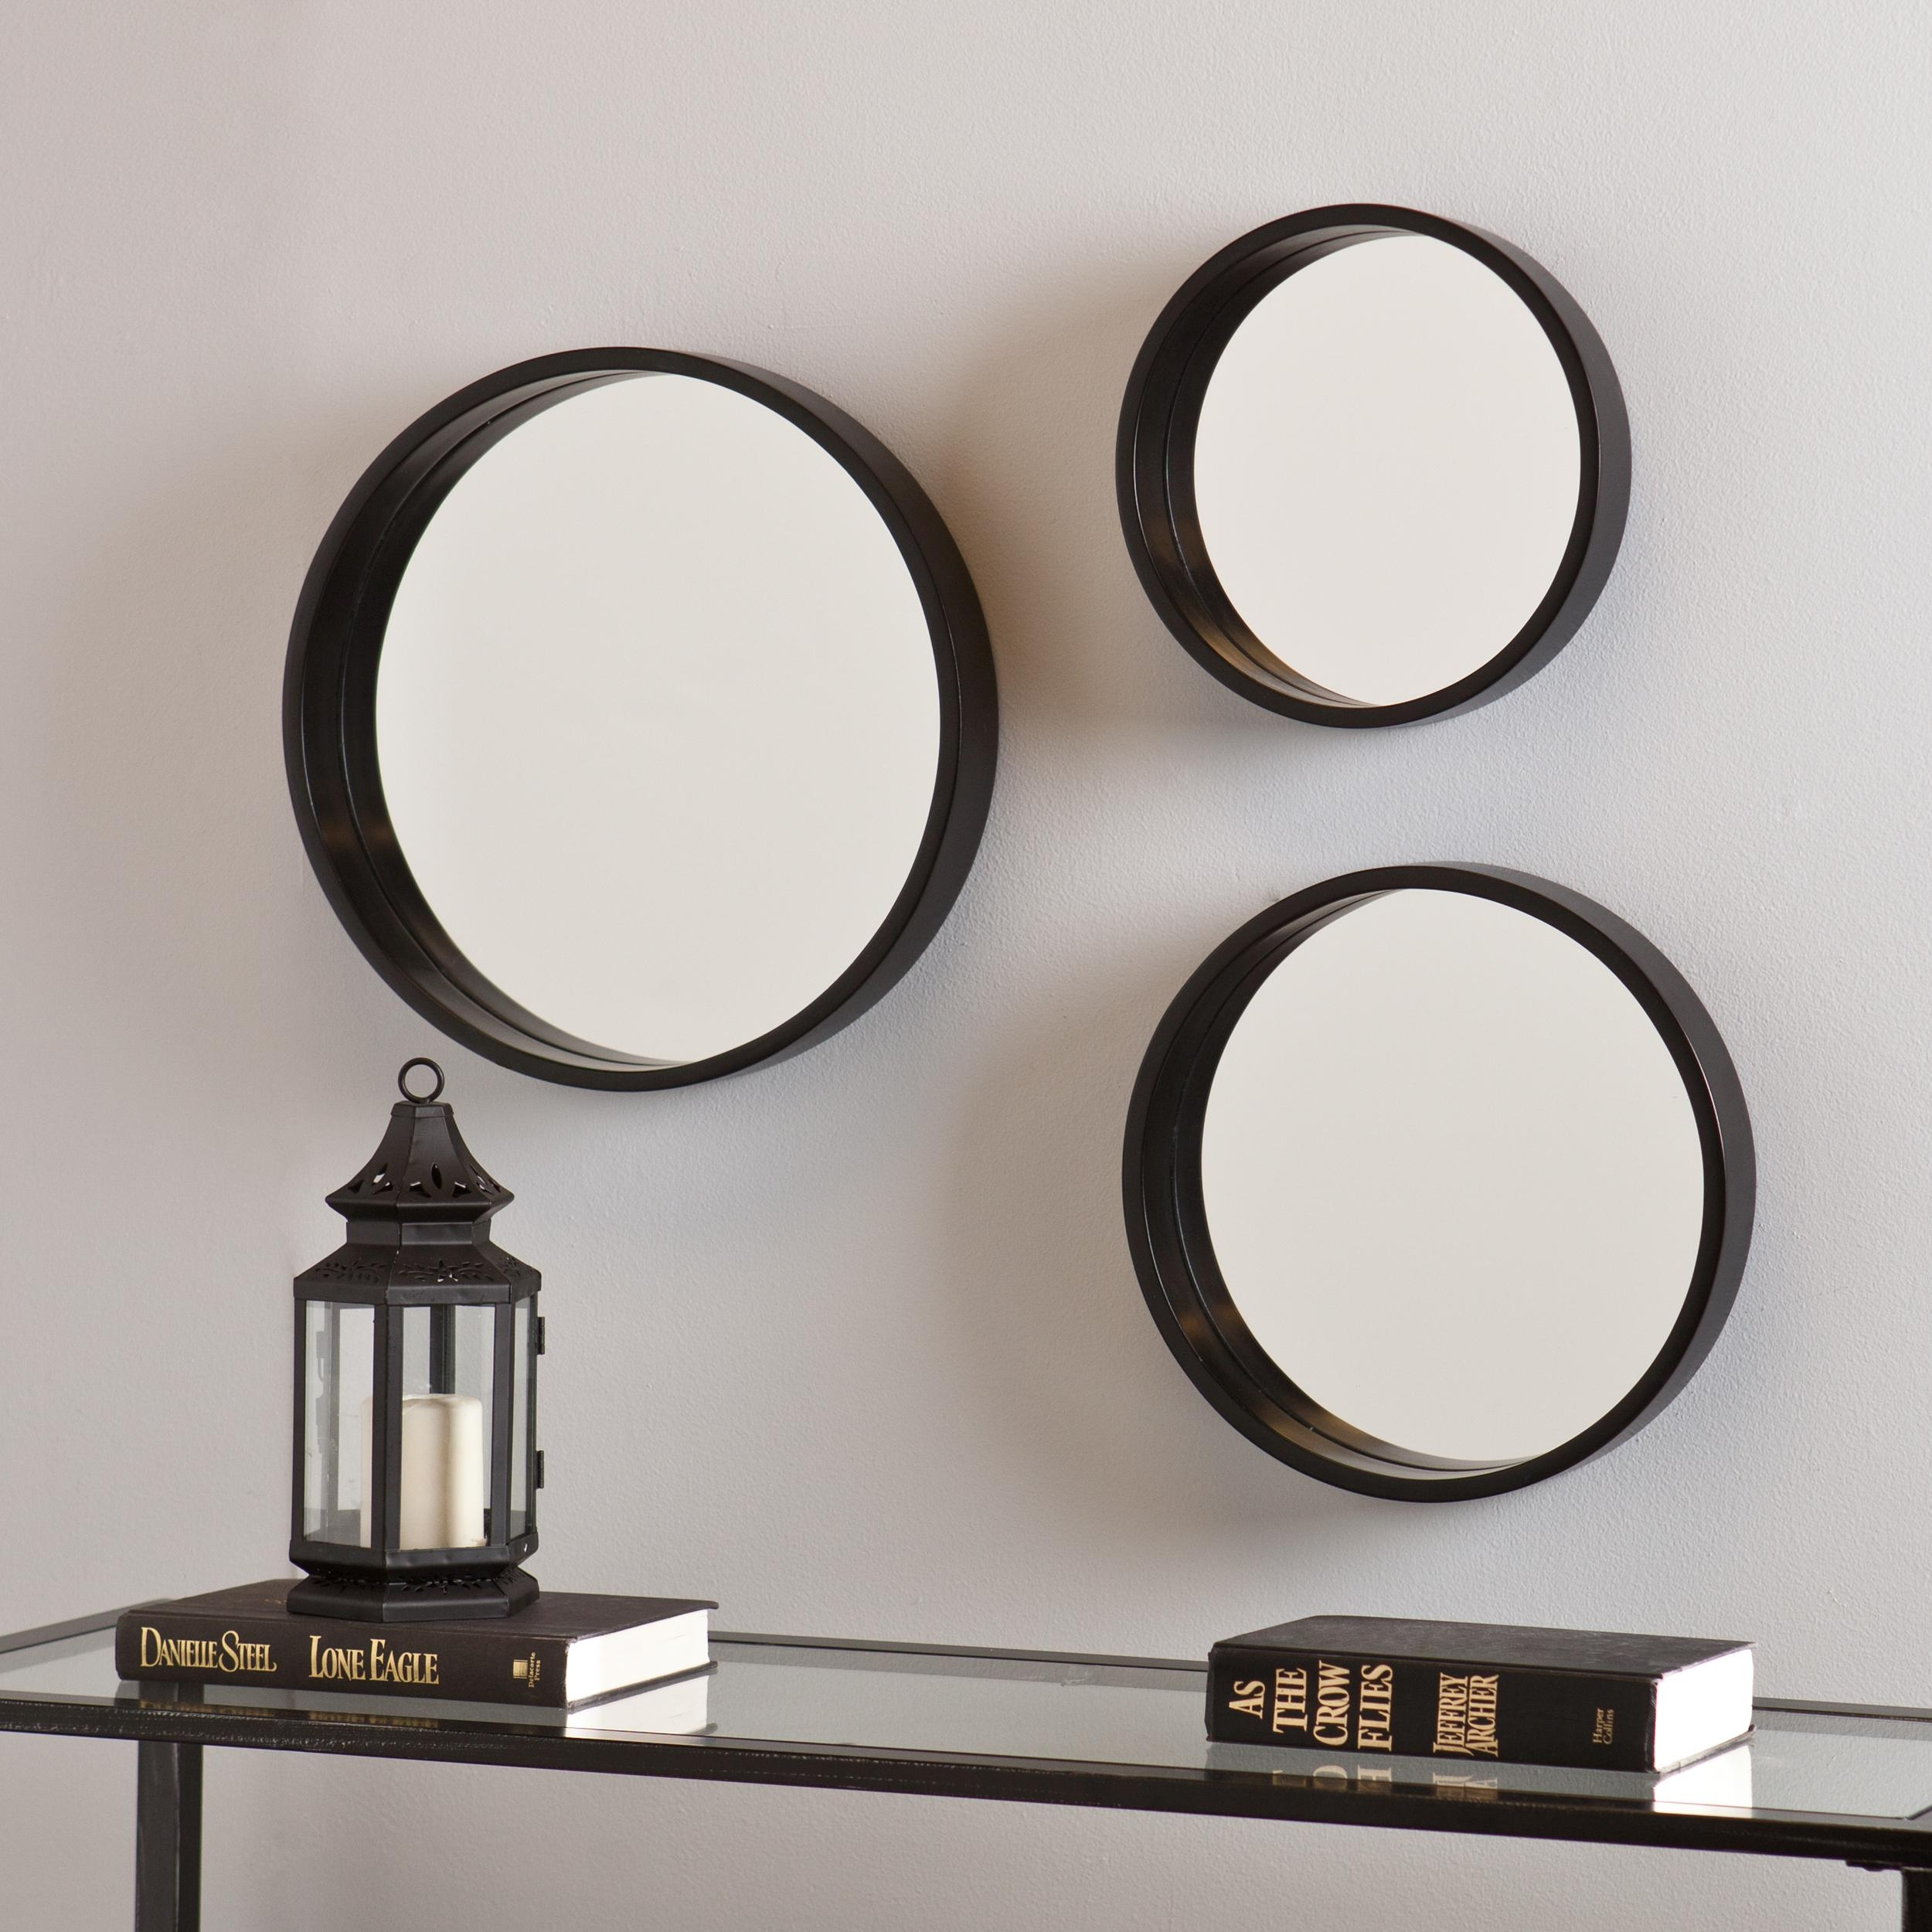 Astonishing Decoration Set Of 3 Wall Mirrors Interesting Better Throughout Interesting Wall Mirrors (Image 2 of 15)